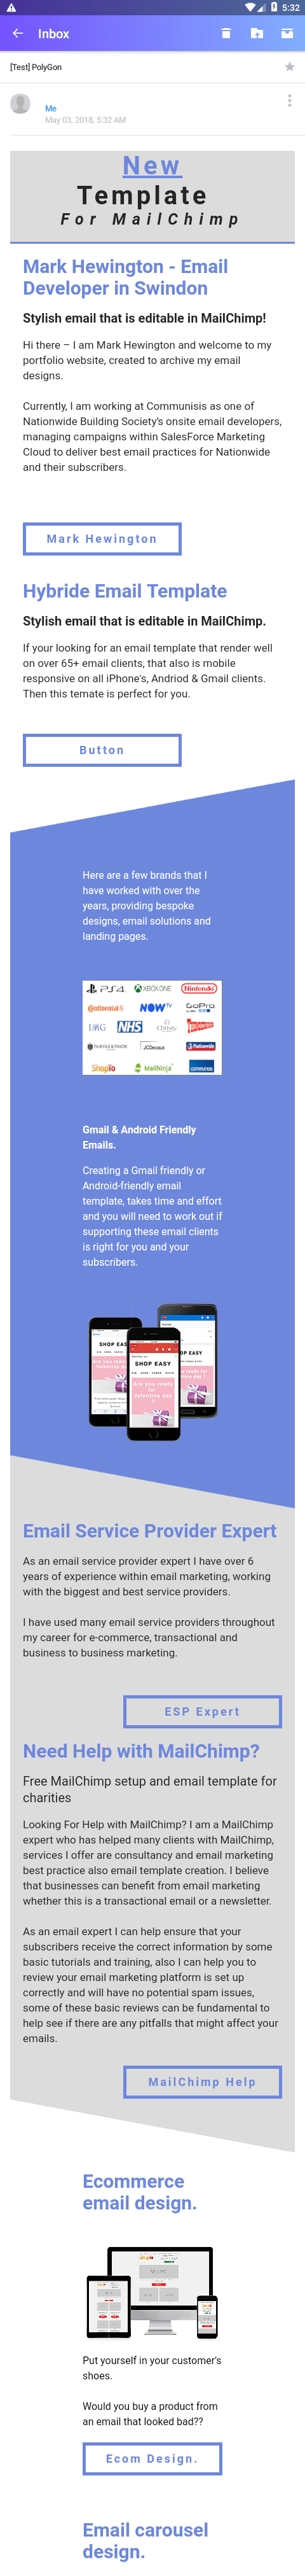 Editable MailChimp Email Template for Yahoo Android 7 version